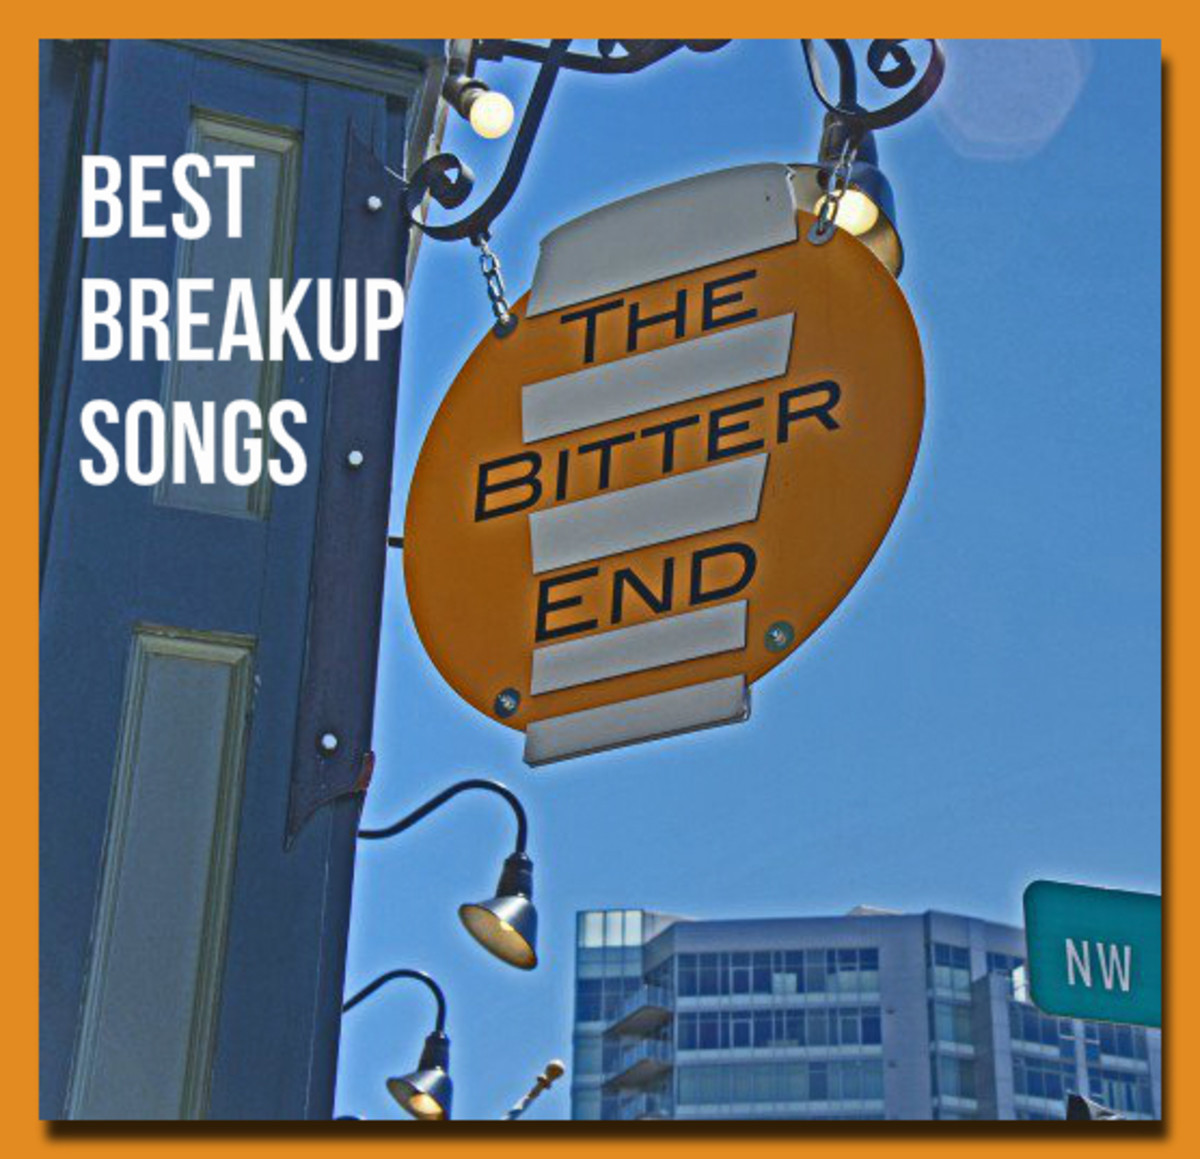 136 Songs About Breakups, Heartbreak, and Divorce